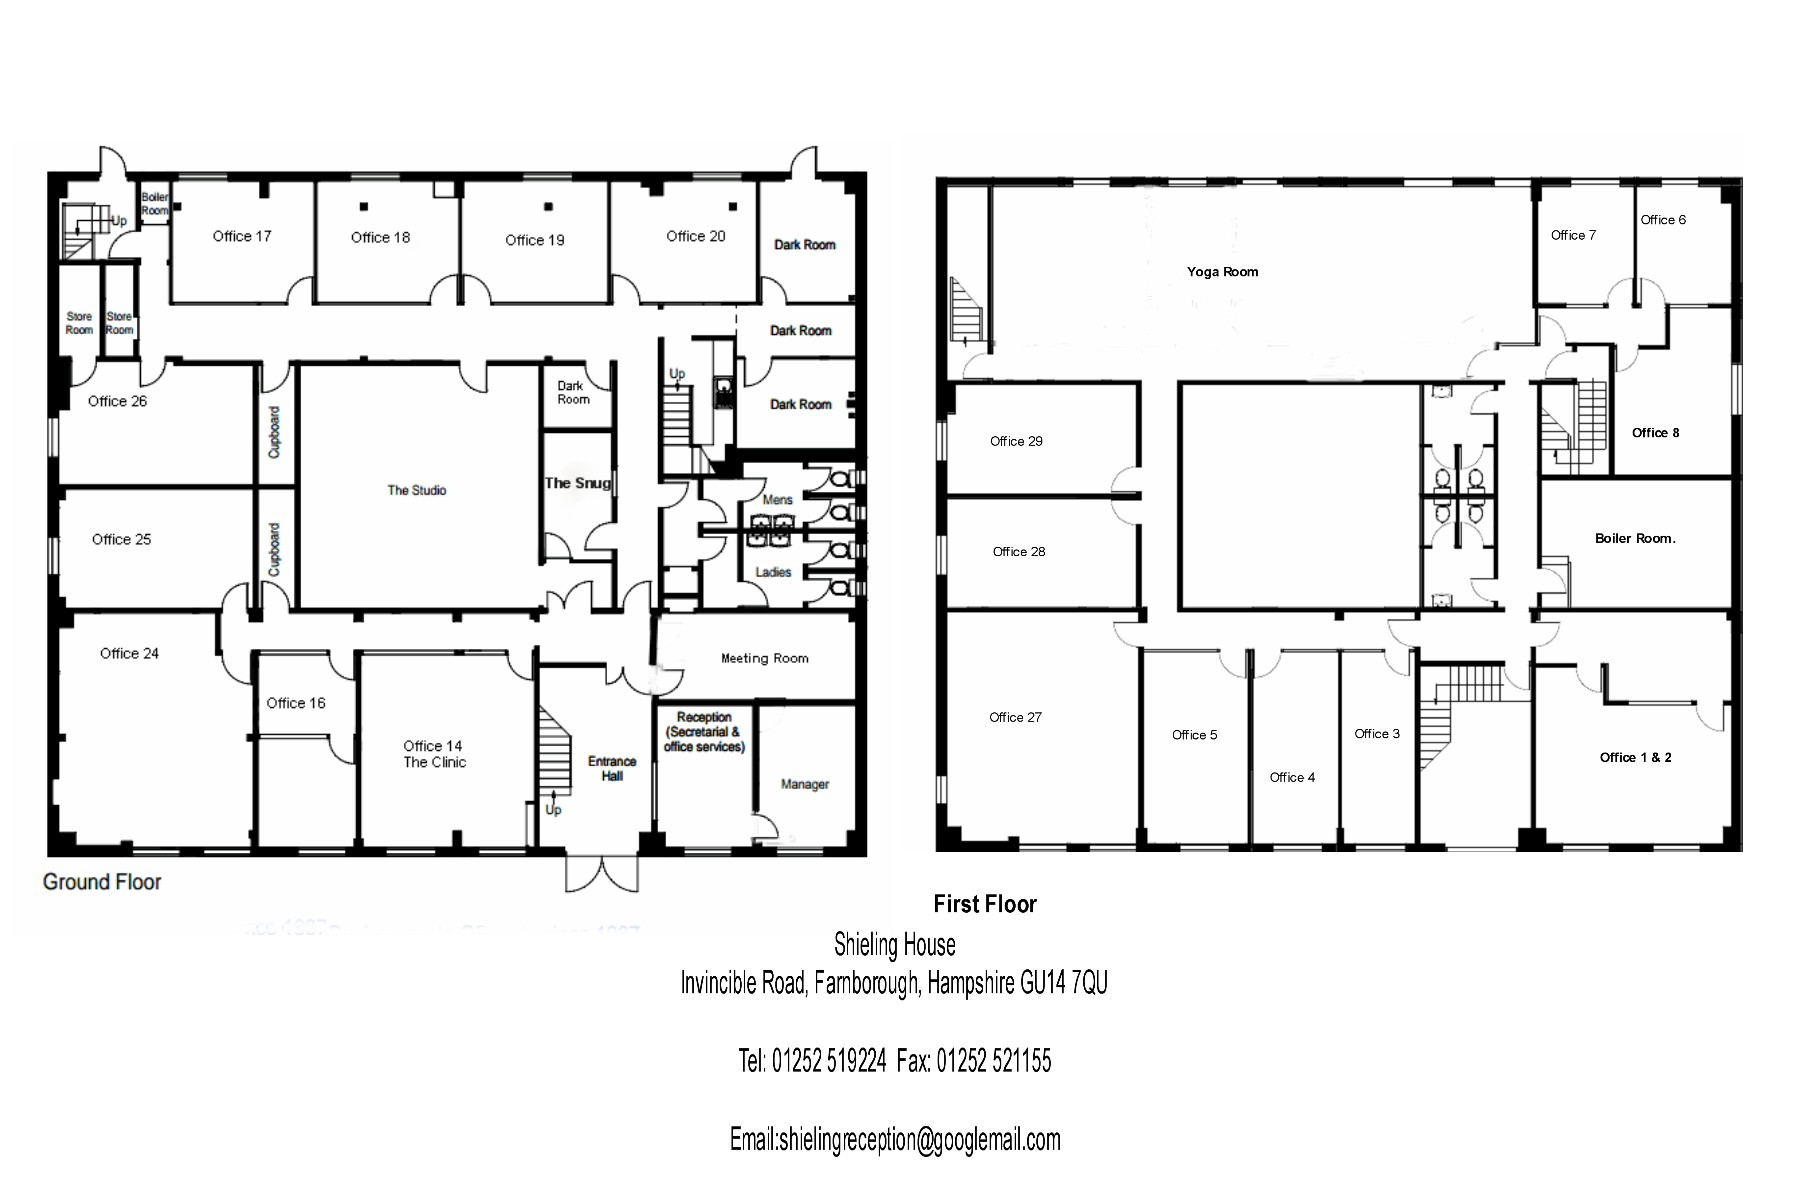 floor plan first and ground floor.jpg